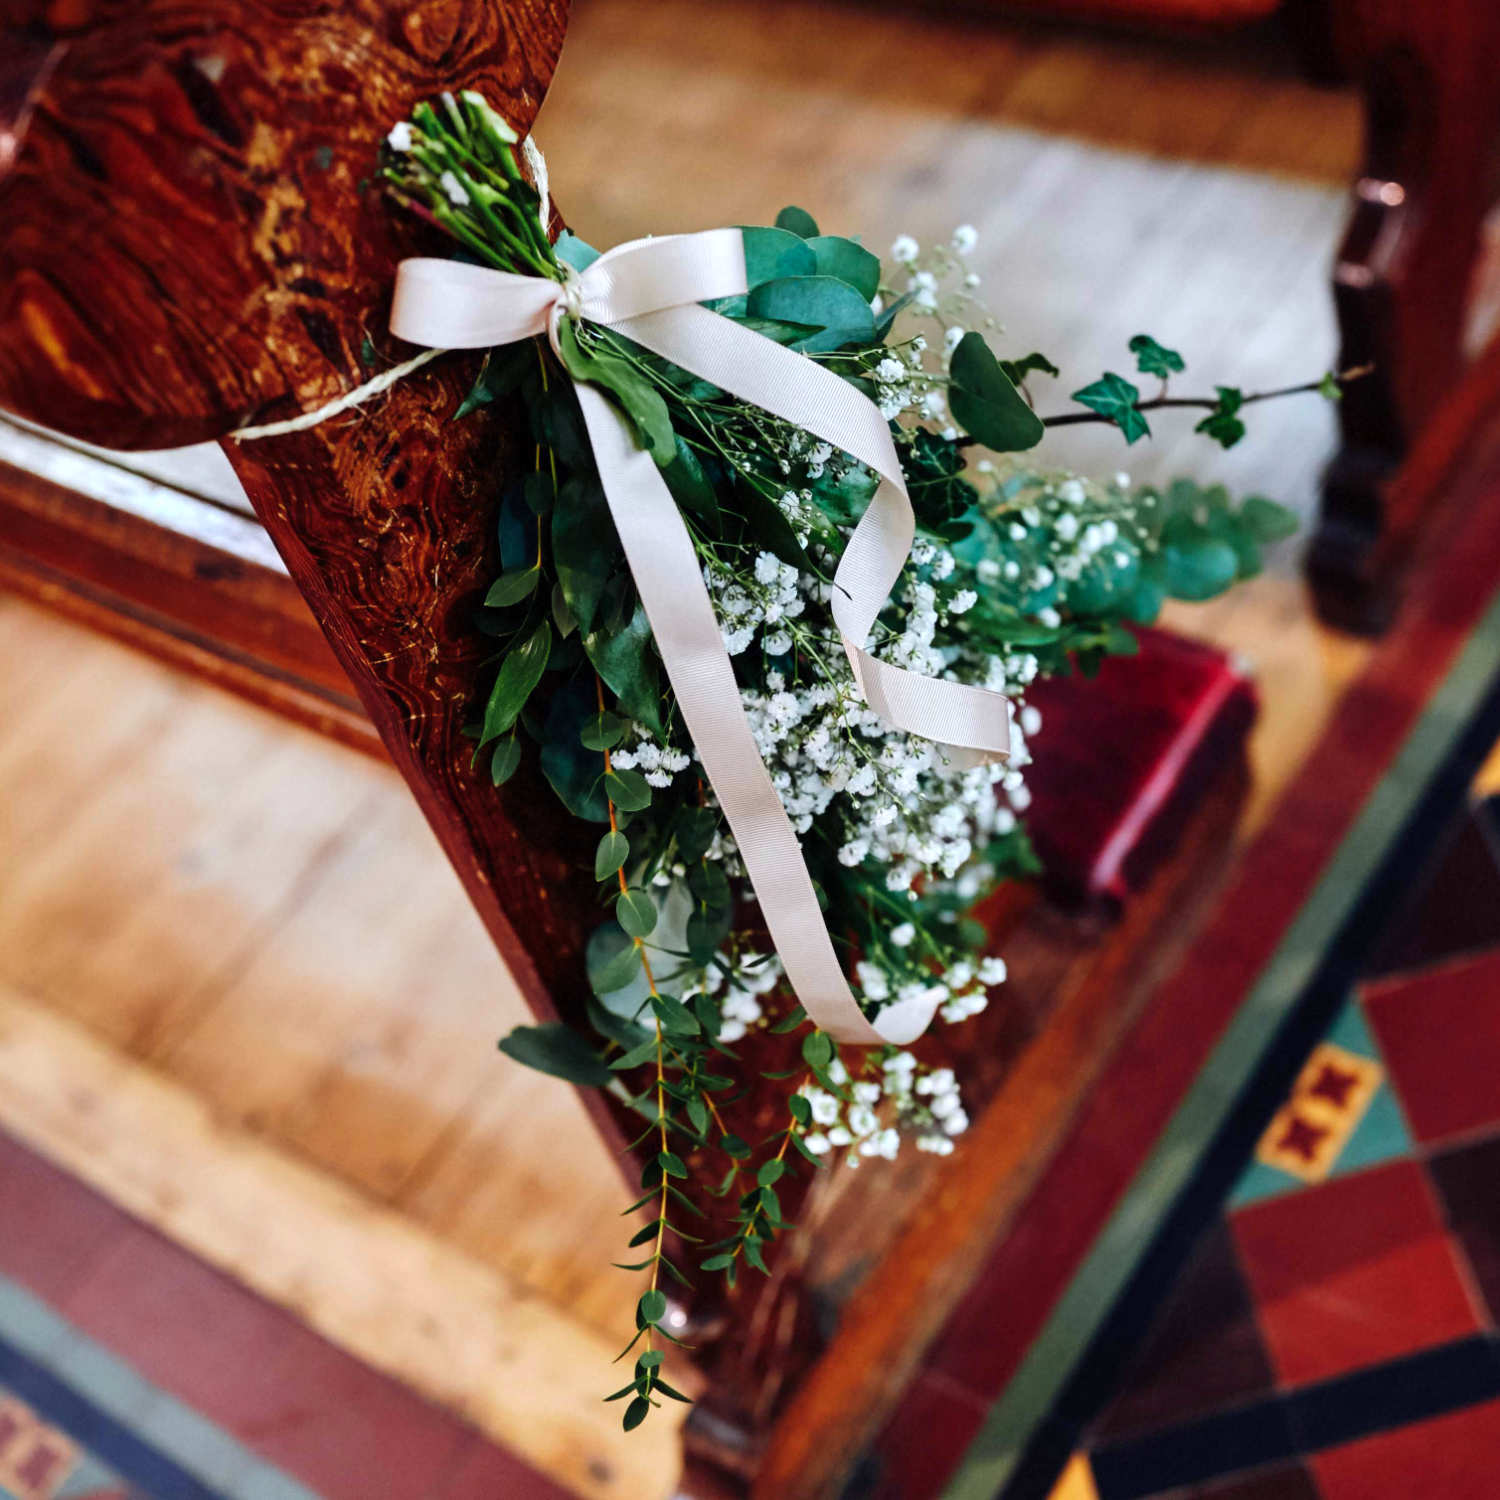 White Flower Bouquet Hanging on Church Pew